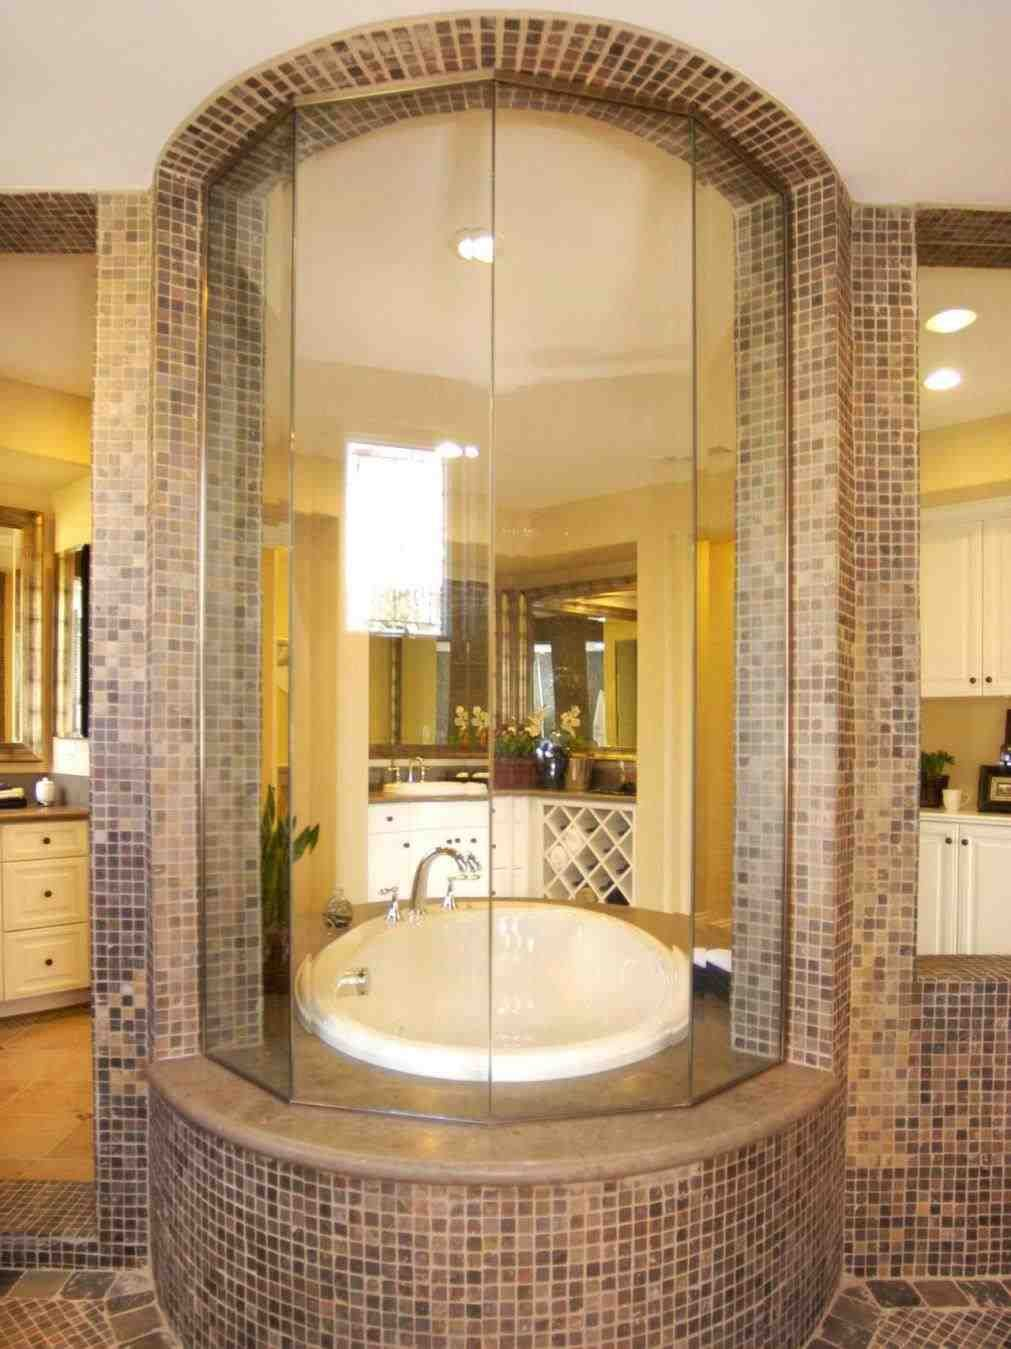 This Jacuzzi Tub With Rain Shower Big Steam Shower Room With Whirlpool Tub 9007 Image 13 Small Bathroom Des Japanese Soaking Tubs Modern Tub Soaking Tub